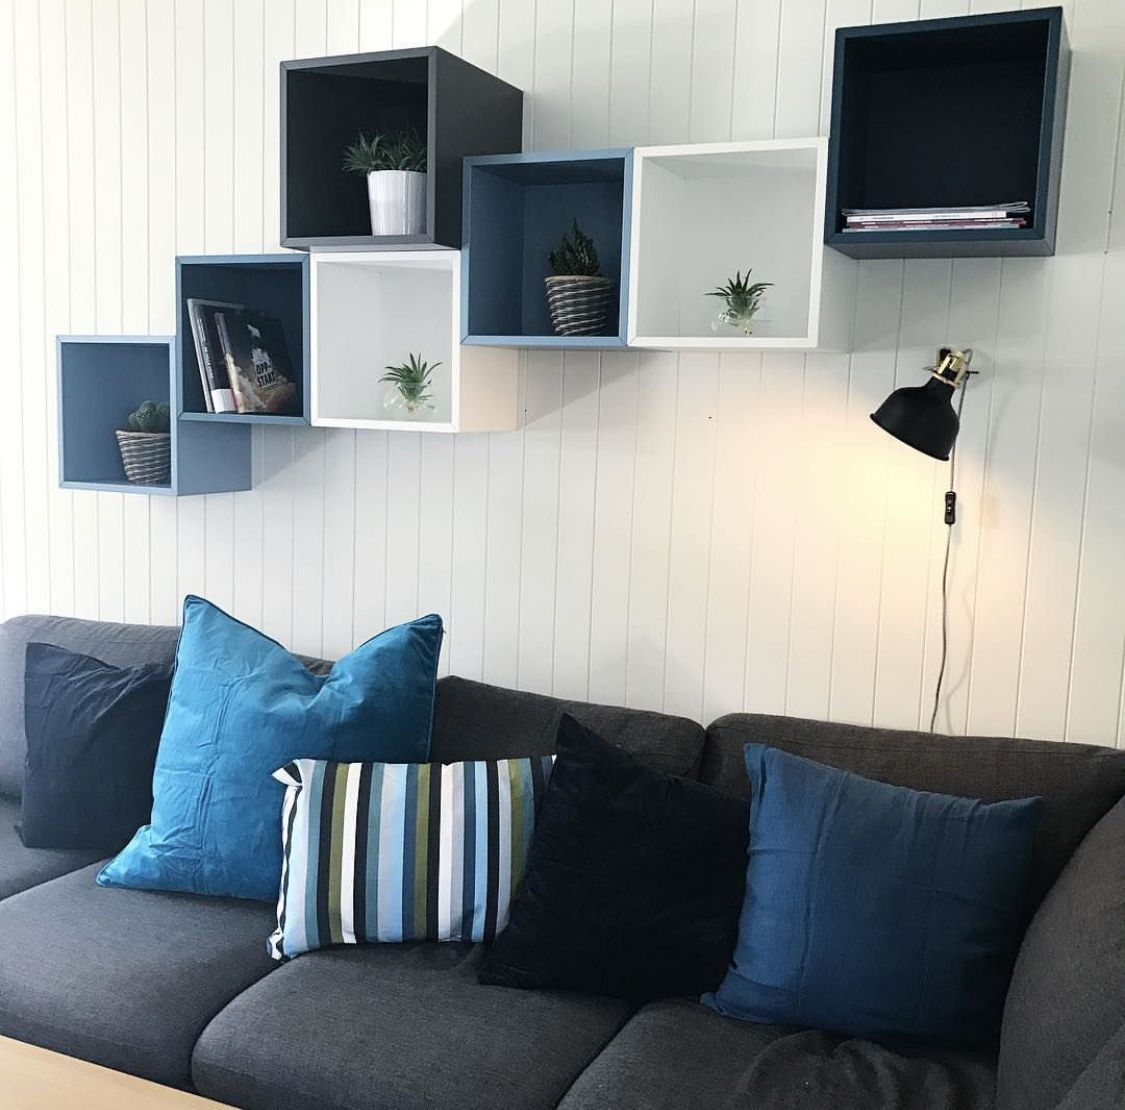 decorative shelves, blue white black square floating boxes, grey sofa, white wooden wall